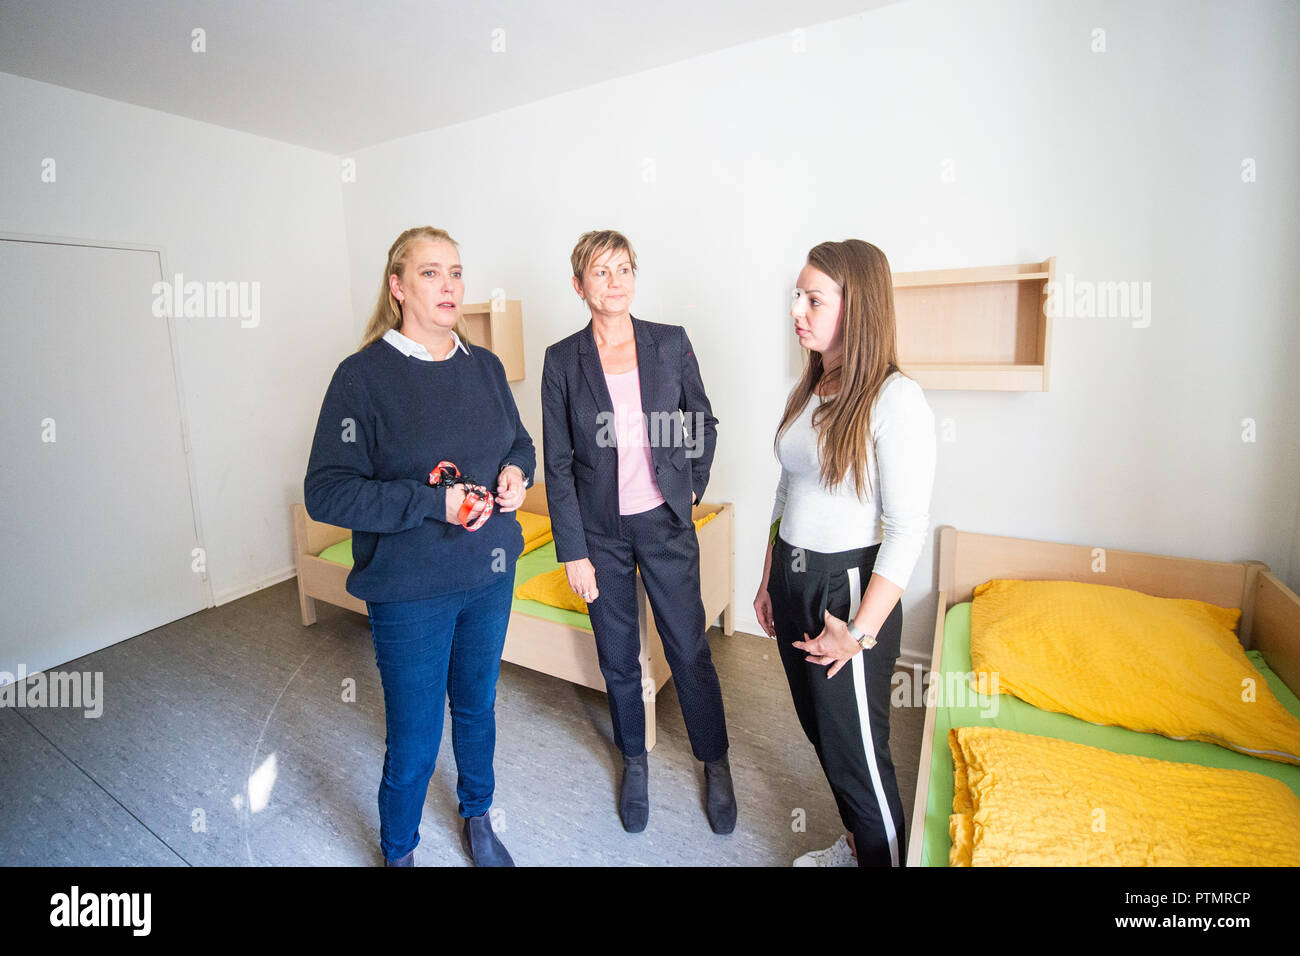 10 October 2018, Berlin: Viola Schröder (l-r), director of the emergency shelter for homeless families, Elke Breitenbach (Die Linke), senator for integration, labour and social affairs and Merle Mangels, social worker and deputy director of accommodation, stand in a room of the emergency shelter for homeless families. On Wednesday, the Berlin Senator for Integration, Labour and Social Affairs Breitenbach (Die Linke) visited Berlin institutions of homeless help. Photo: Arne Immanuel Bänsch/dpa - Stock Image